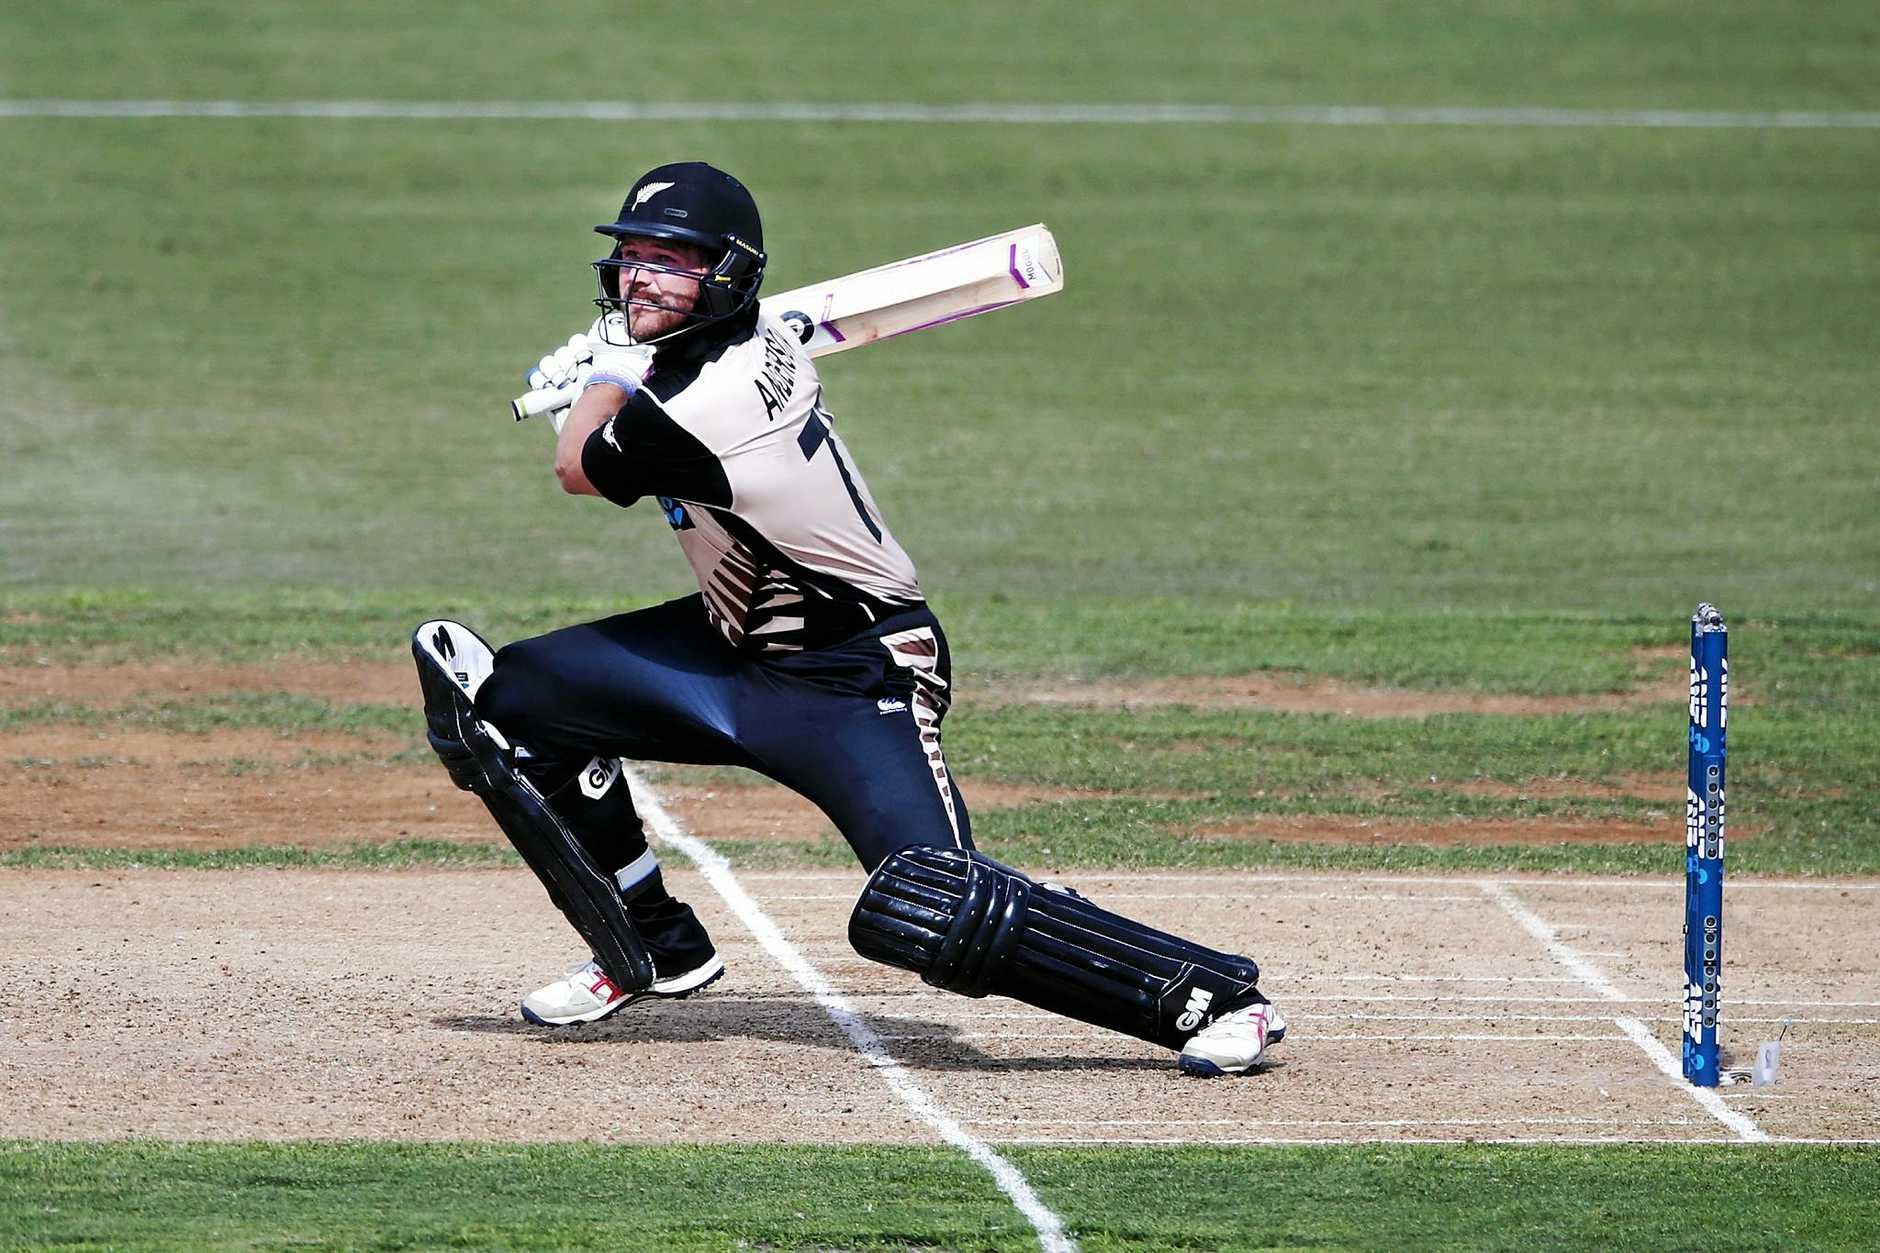 Corey Anderson of New Zealand bats during the third Twenty20 international match against Bangladesh.